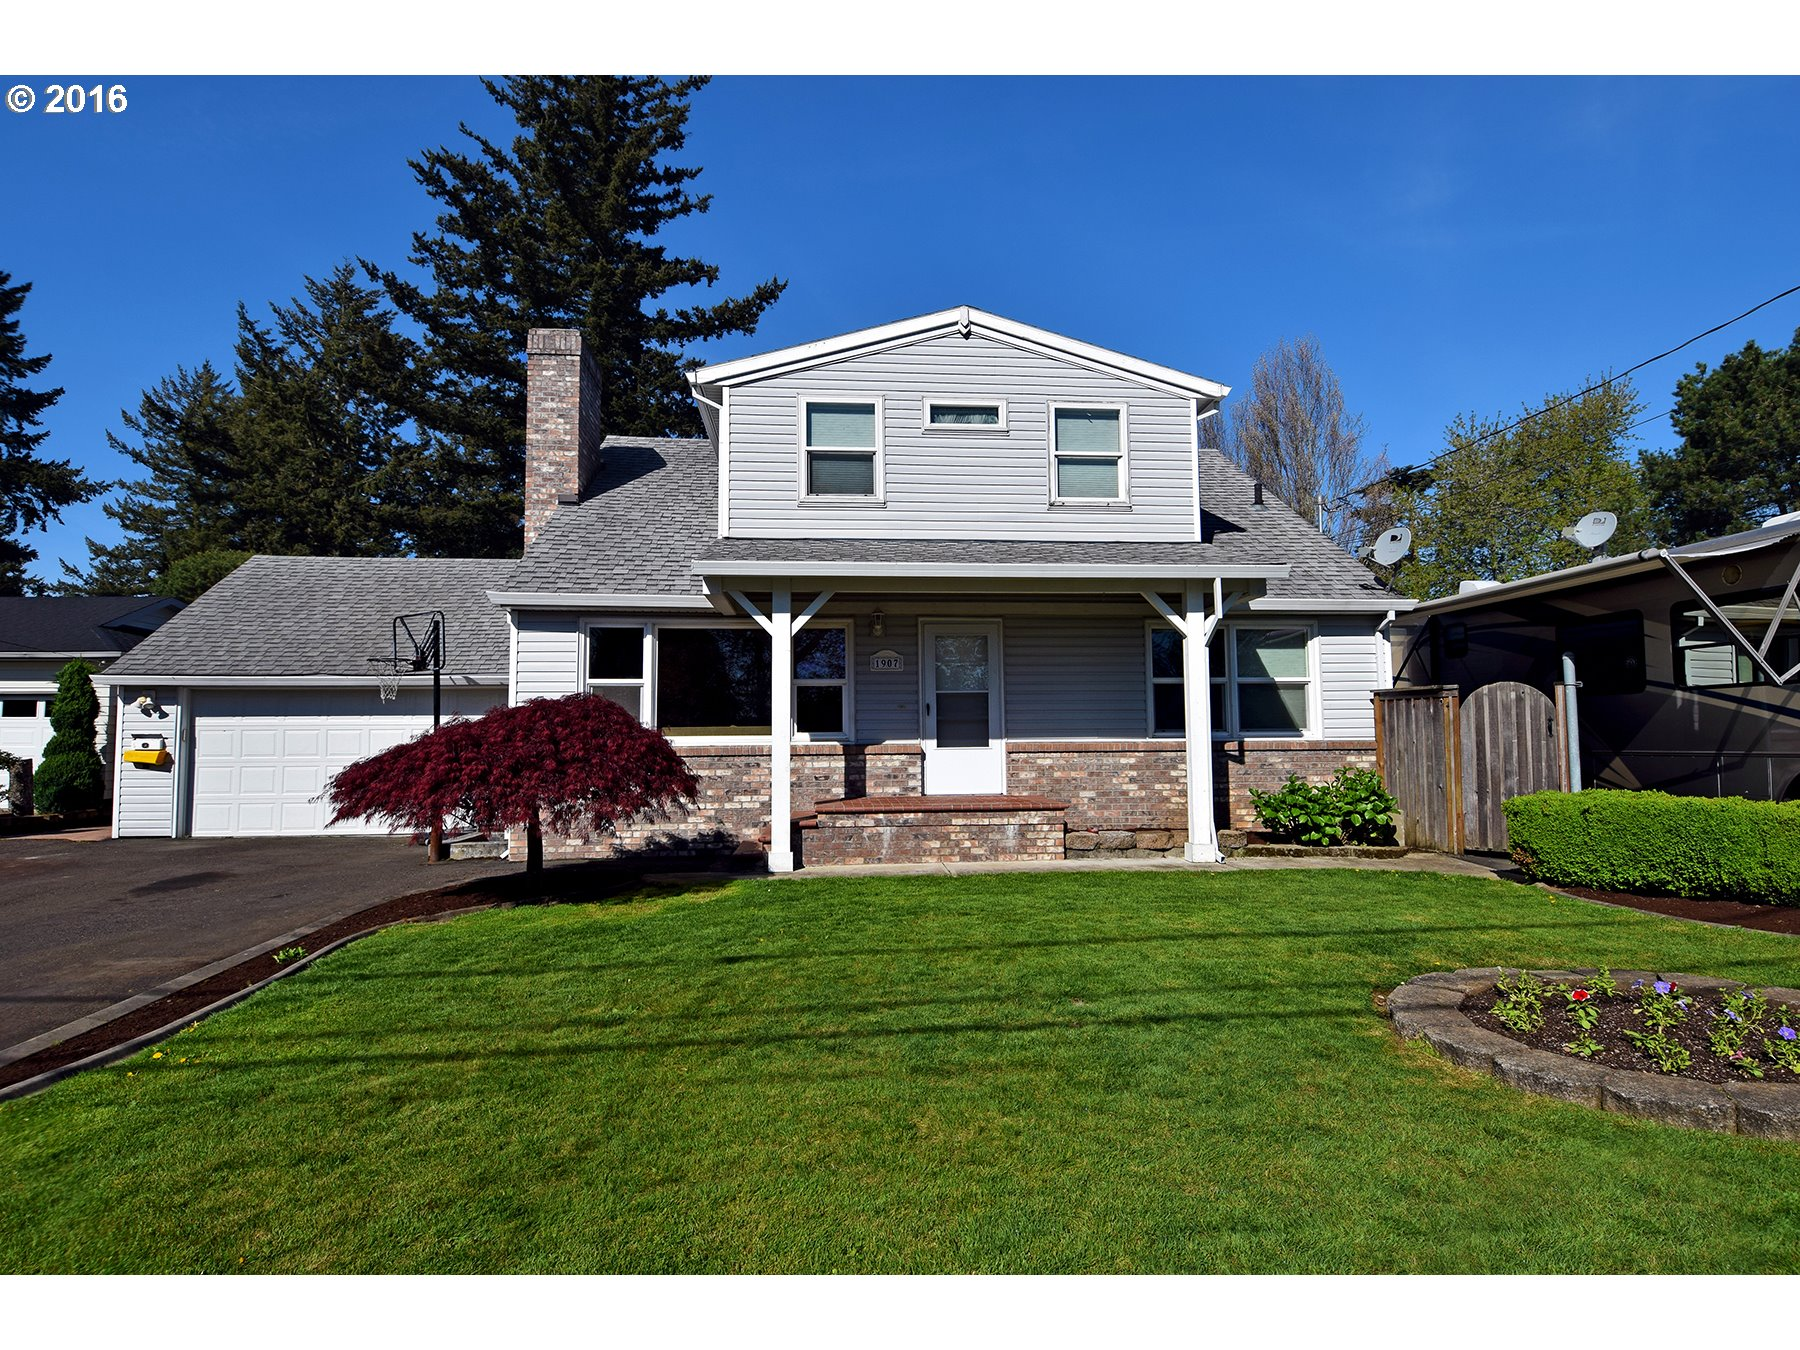 $350,000 - 5Br/3Ba -  for Sale in Parkrose / Russell, Portland